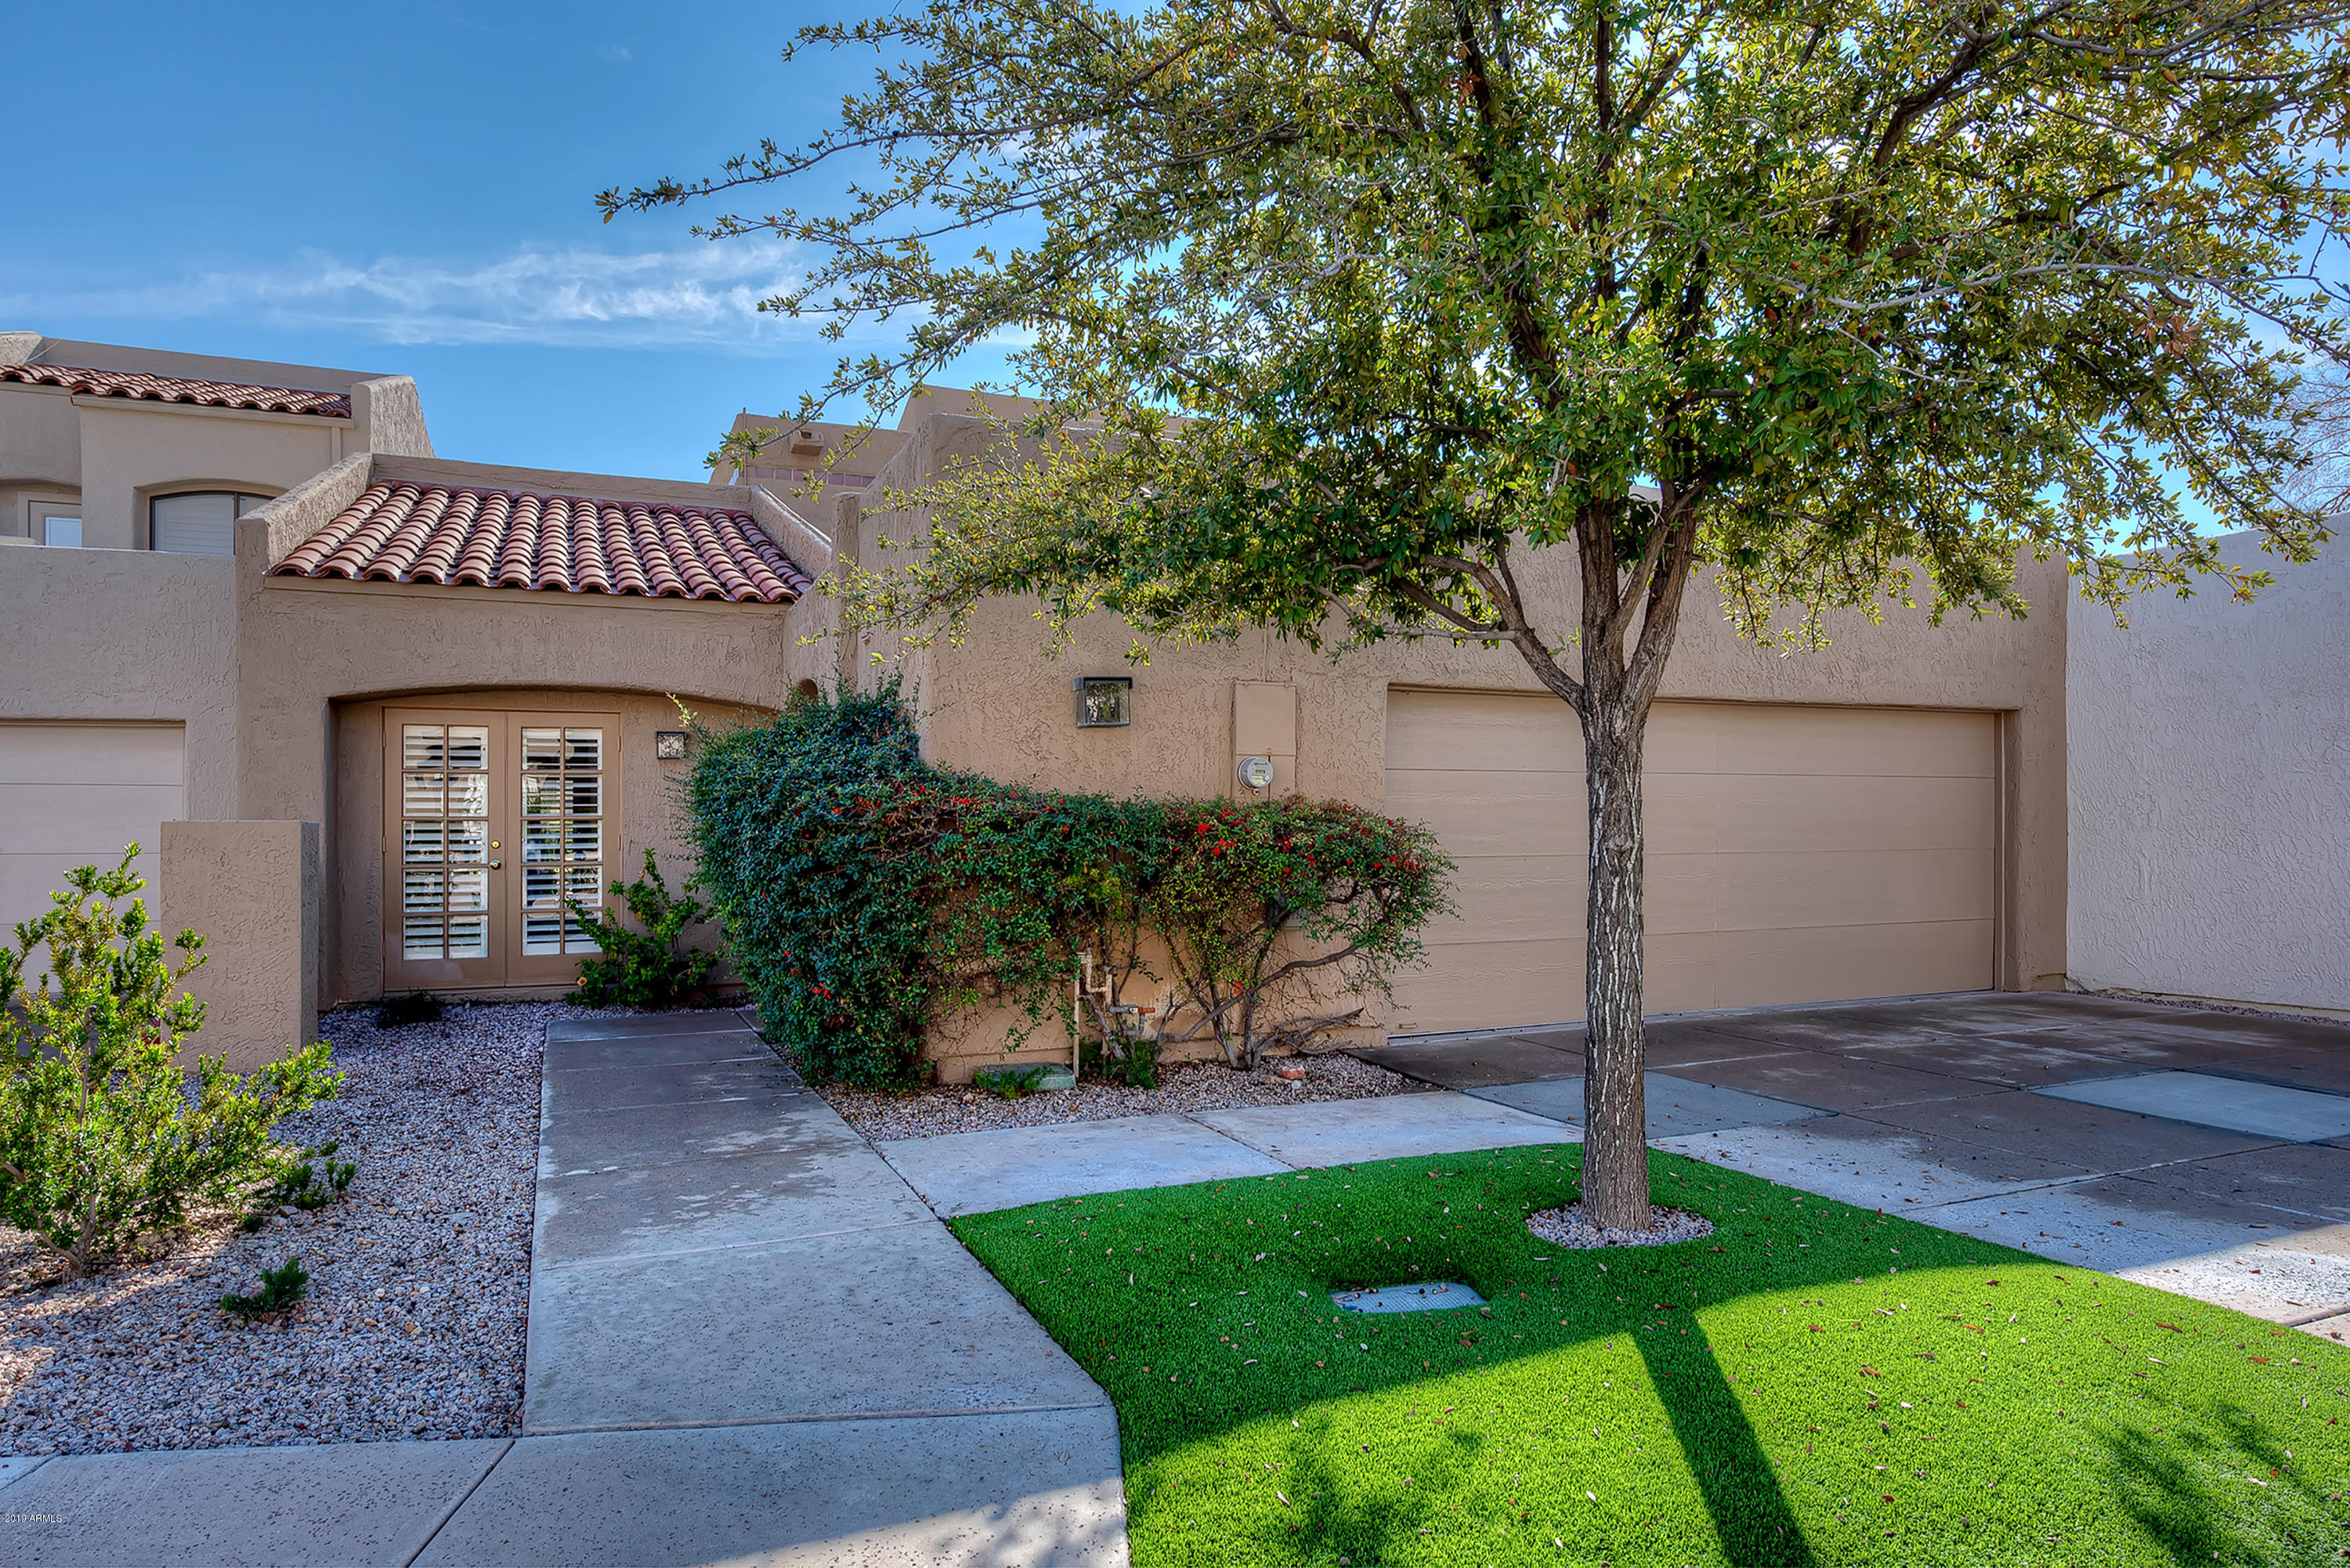 Photo of 2626 E ARIZONA BILTMORE Circle #2, Phoenix, AZ 85016